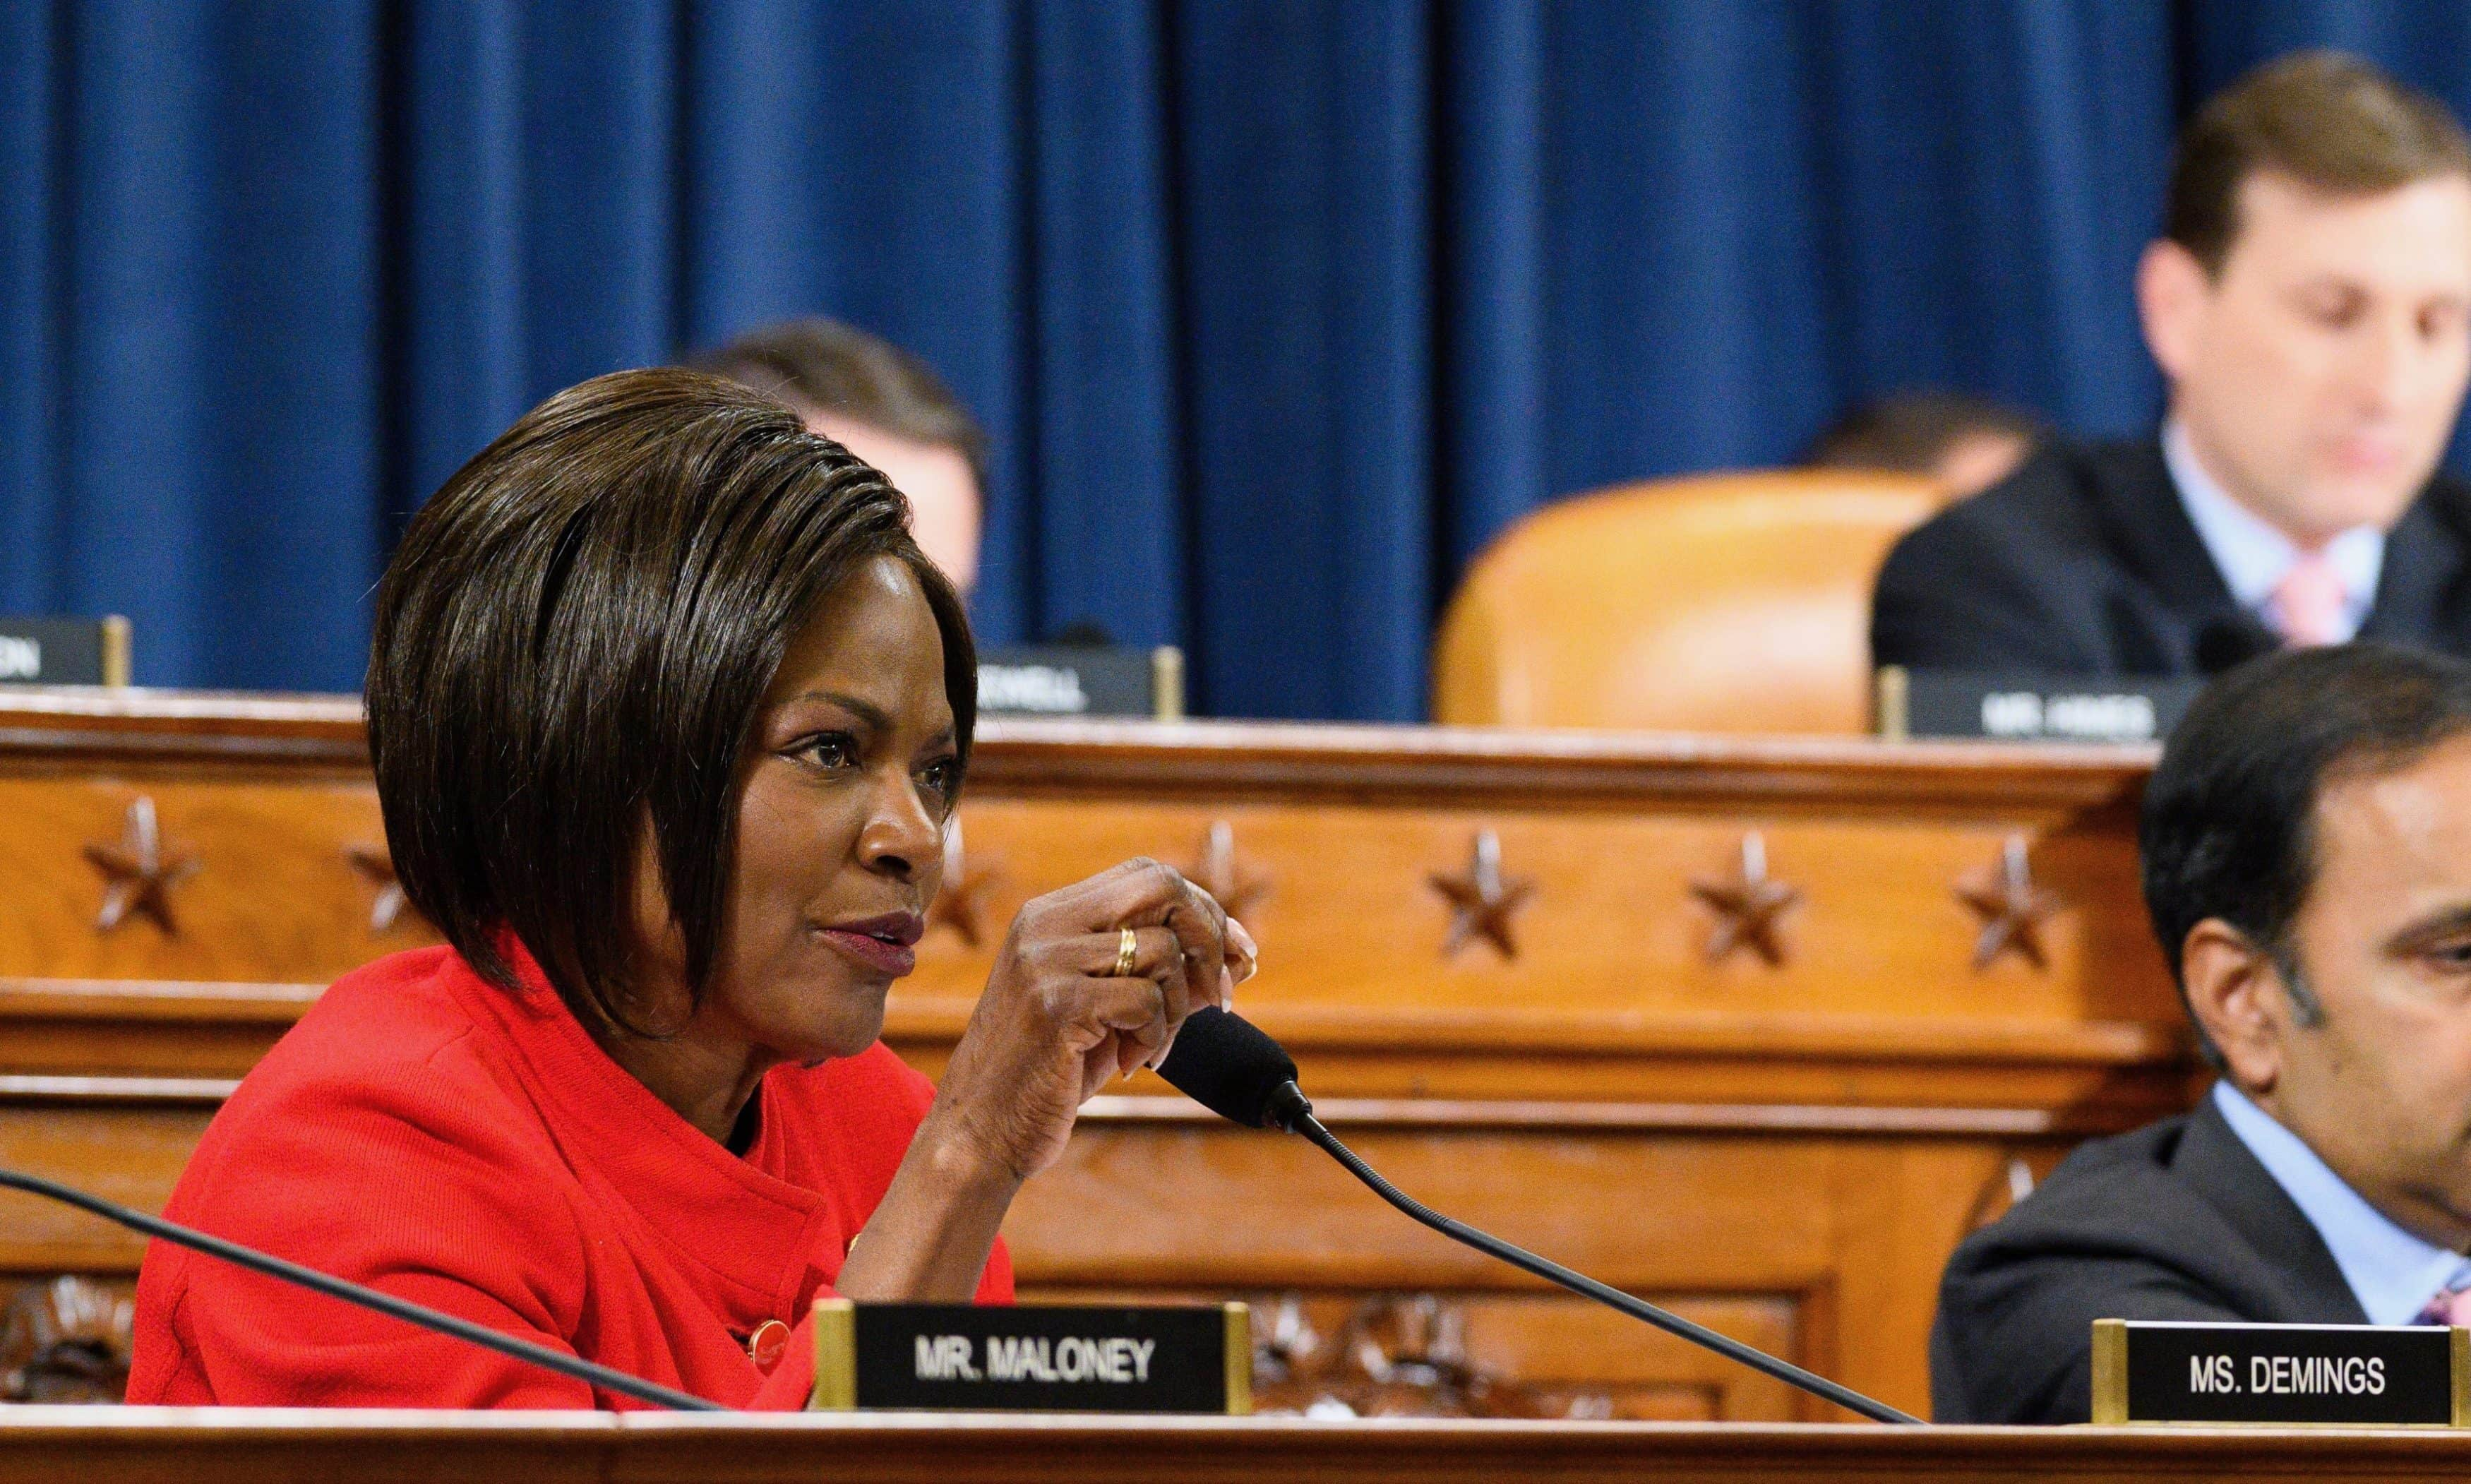 Val-Demings-Committee-3-1-3500x2102.jpg